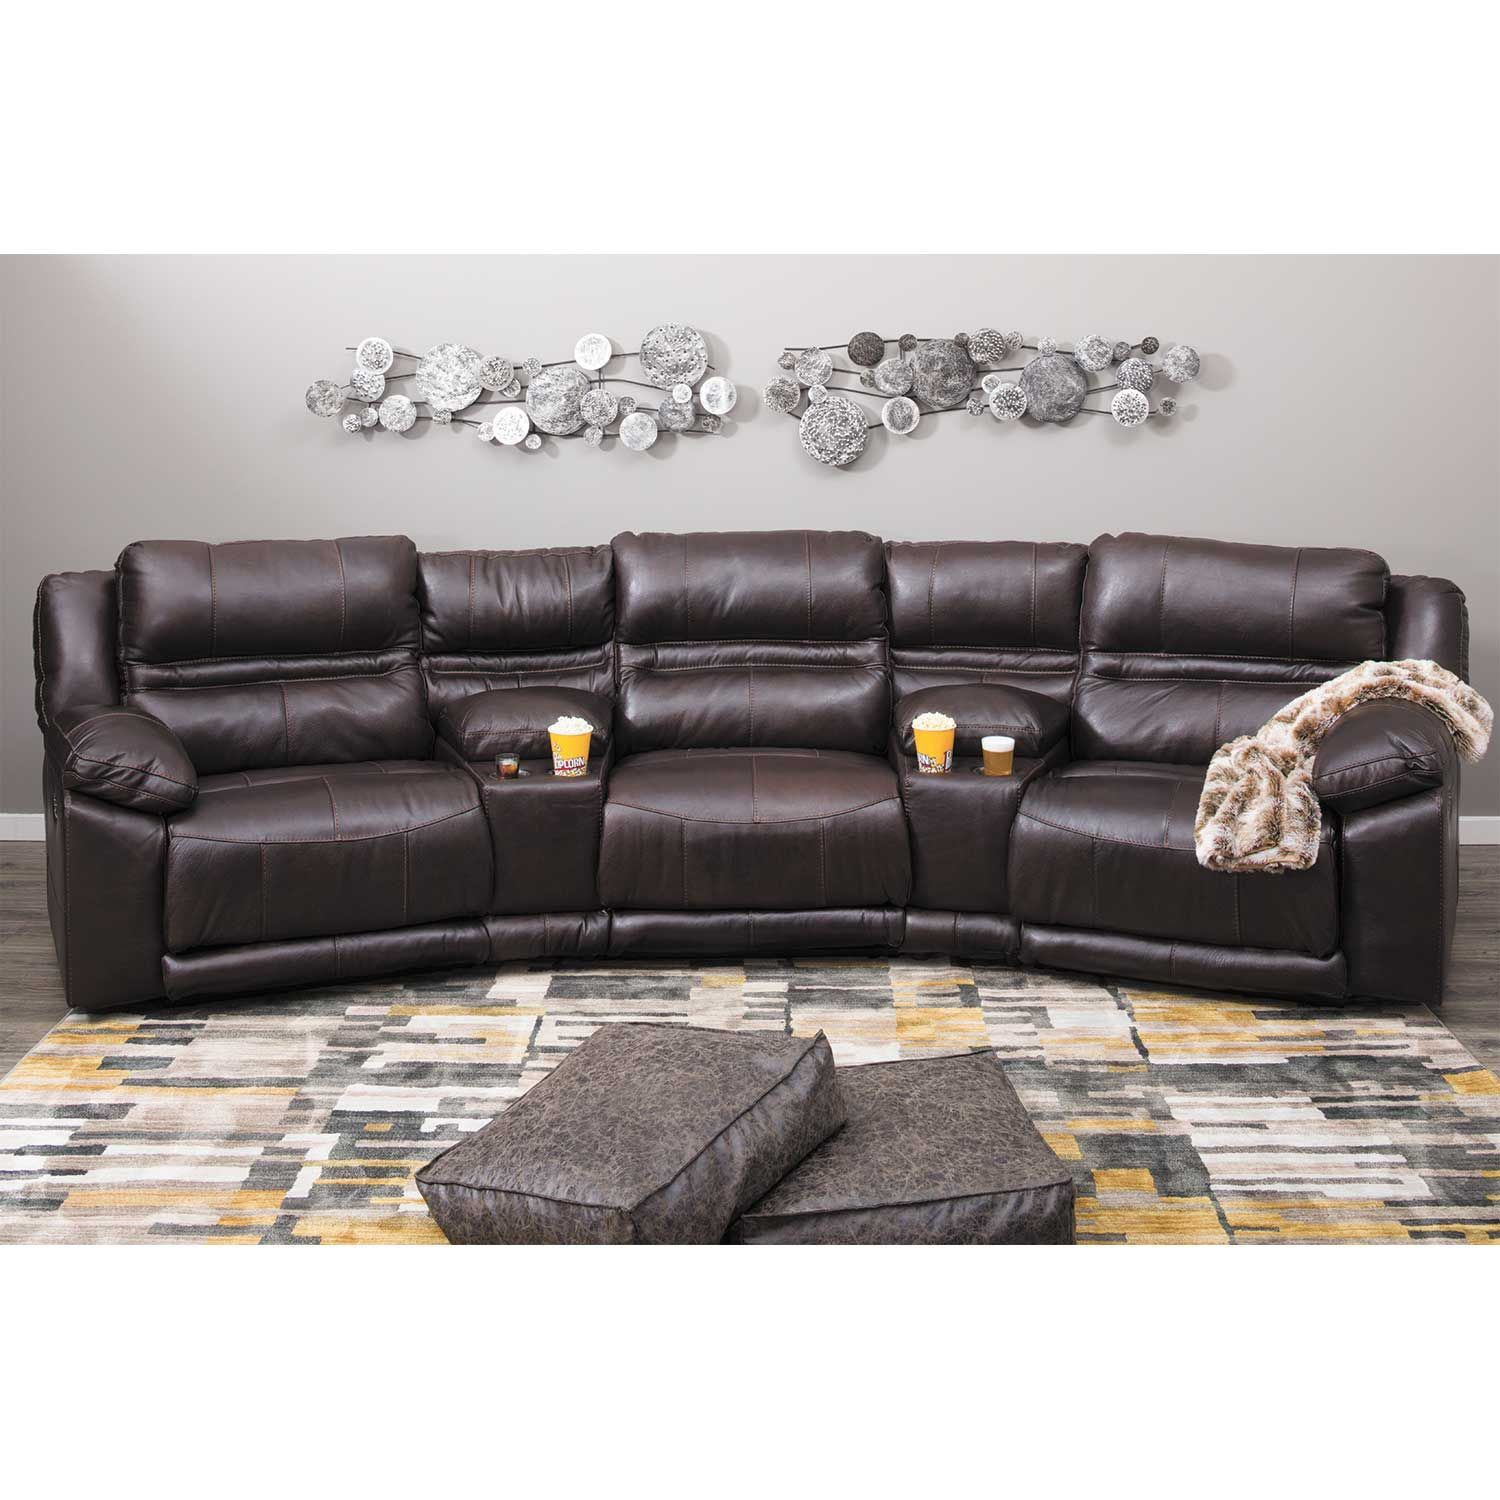 Picture of Bergamo 5 Piece Power Reclining Home Theater Sectional with Adjustable Headrest and Lumbar